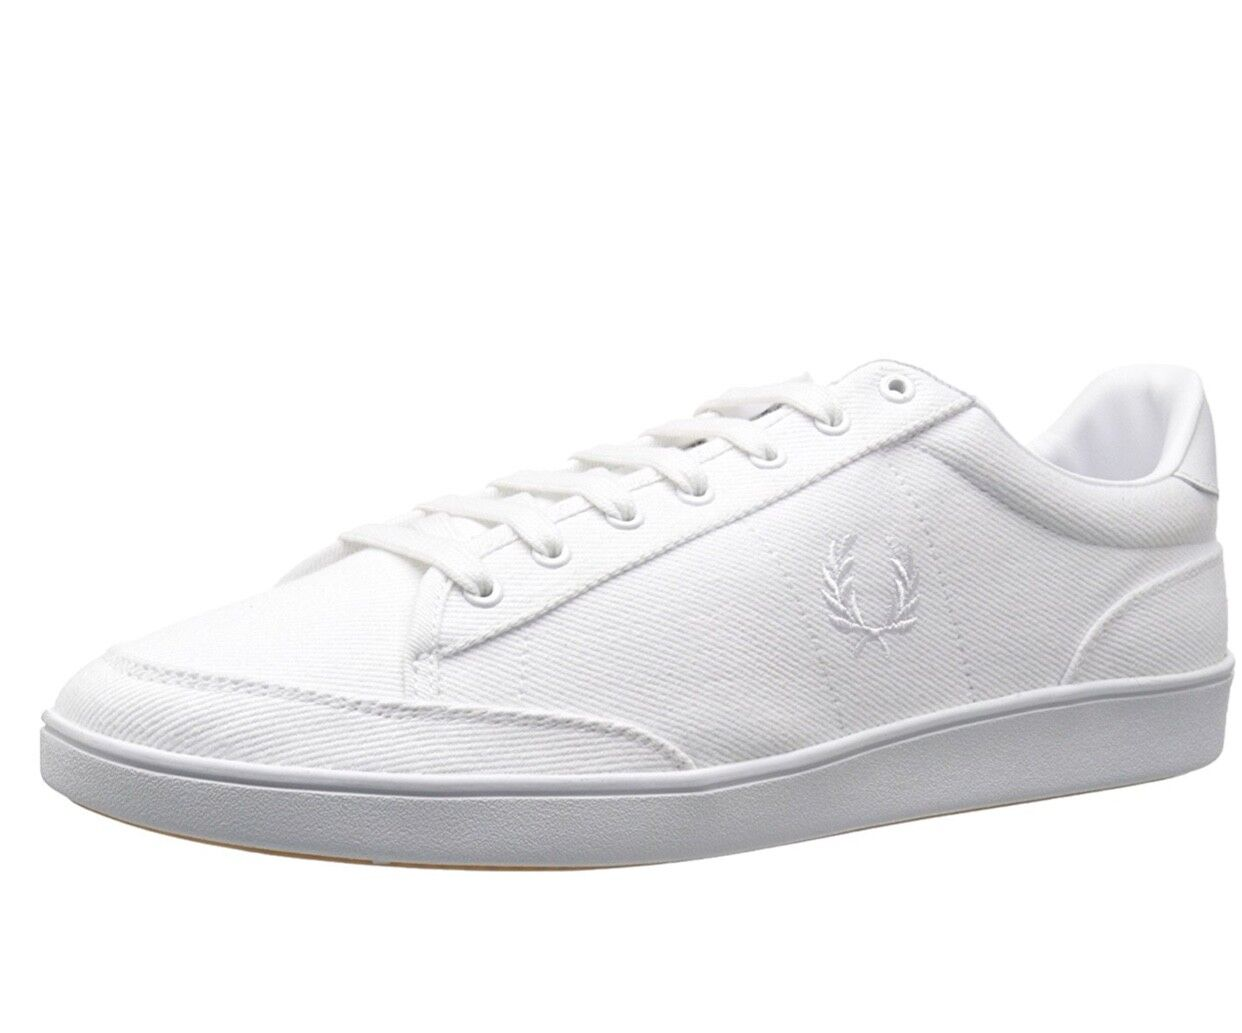 Fred Perry Mens Hopman Twill   Leather shoes Trainers B8248-100 - White